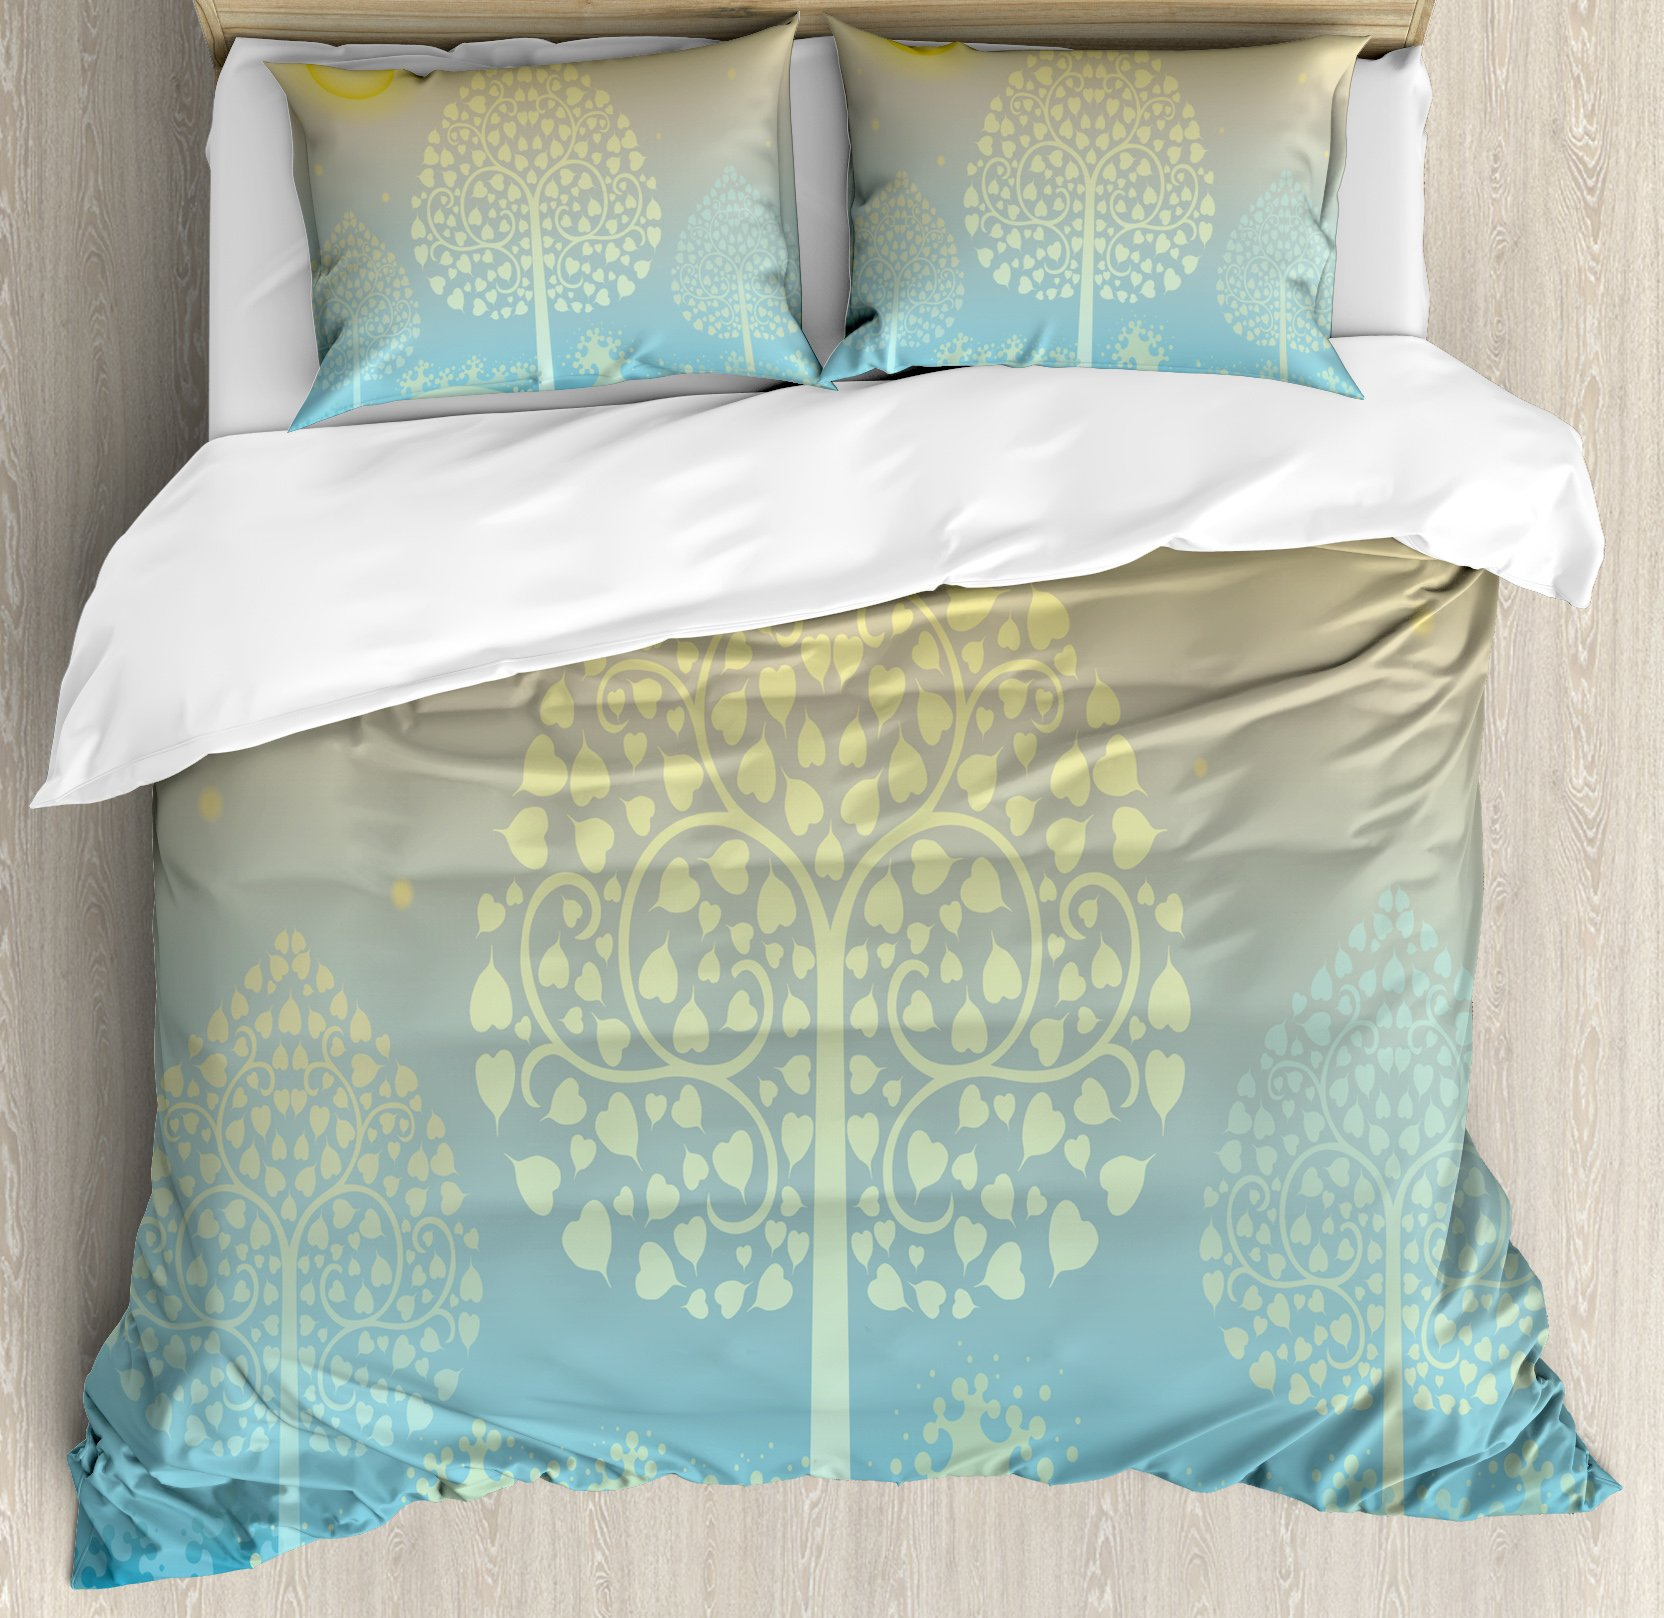 Art King Size Duvet Cover Set by Ambesonne, Thai Pattern Design Illustration of Gold Tree Oriental Culture Asia Eastern Ways, Decorative 3 Piece Bedding Set with 2 Pillow Shams, Gold Sky Blue by Ambesonne